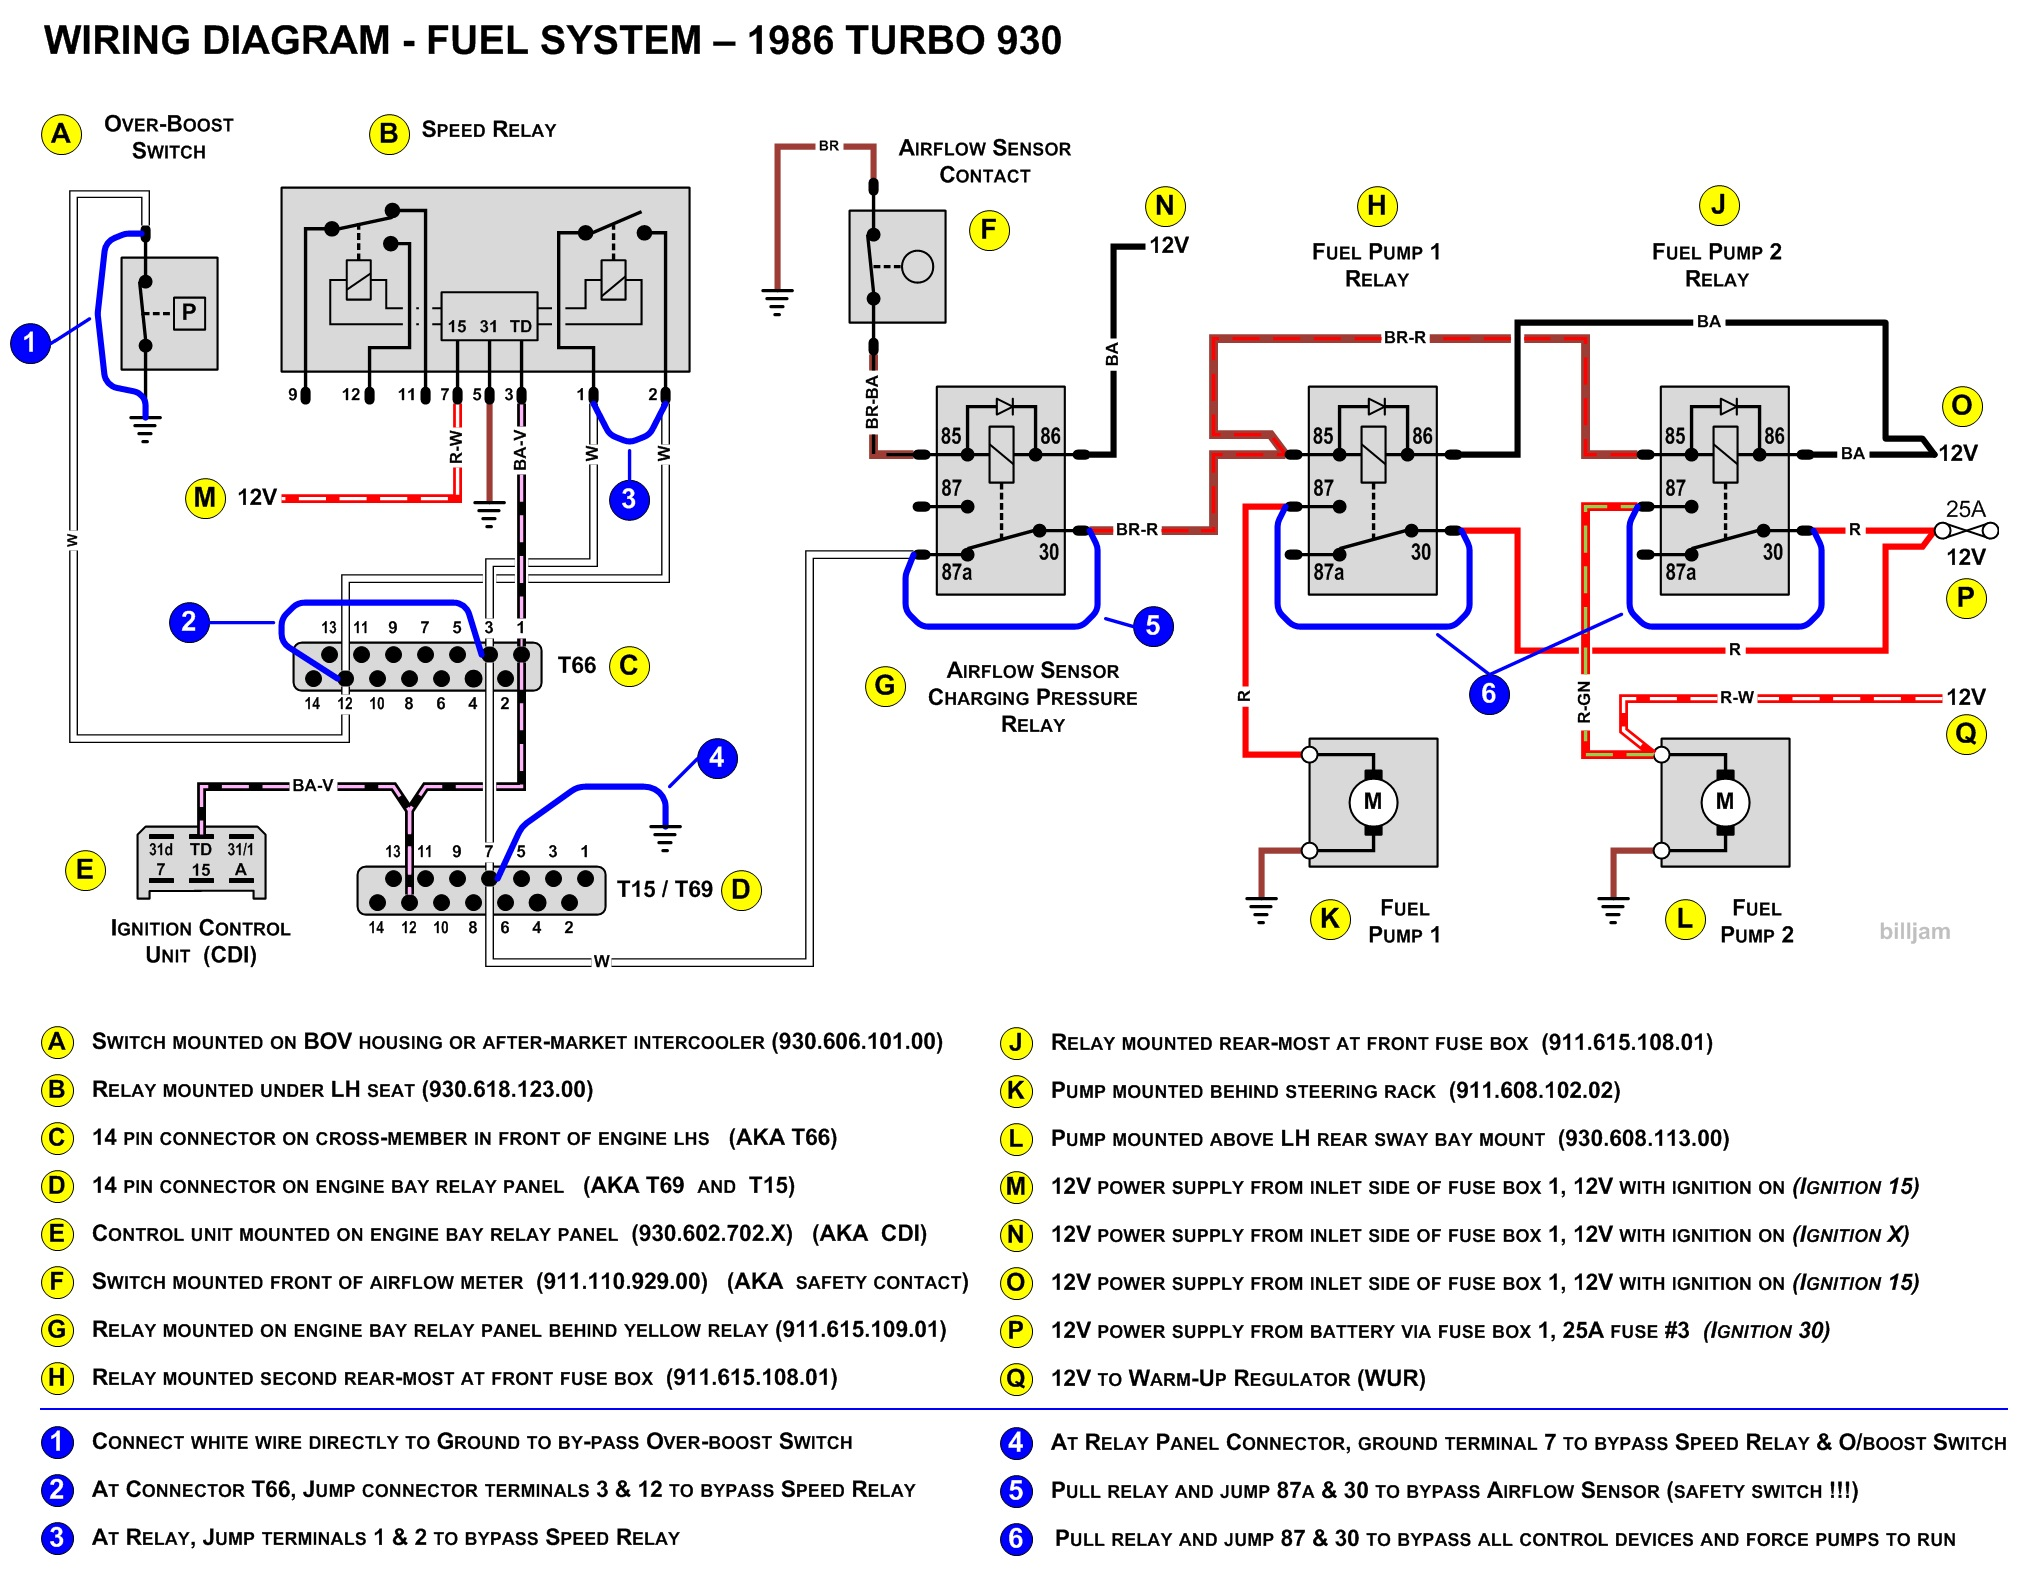 2000 Porsche 911 Fuse Box Diagram Great Design Of Wiring 1999 Firebird Made A Label For My 88 Page 3 Pelican Parts Forums Rh Pelicanparts Com 2003